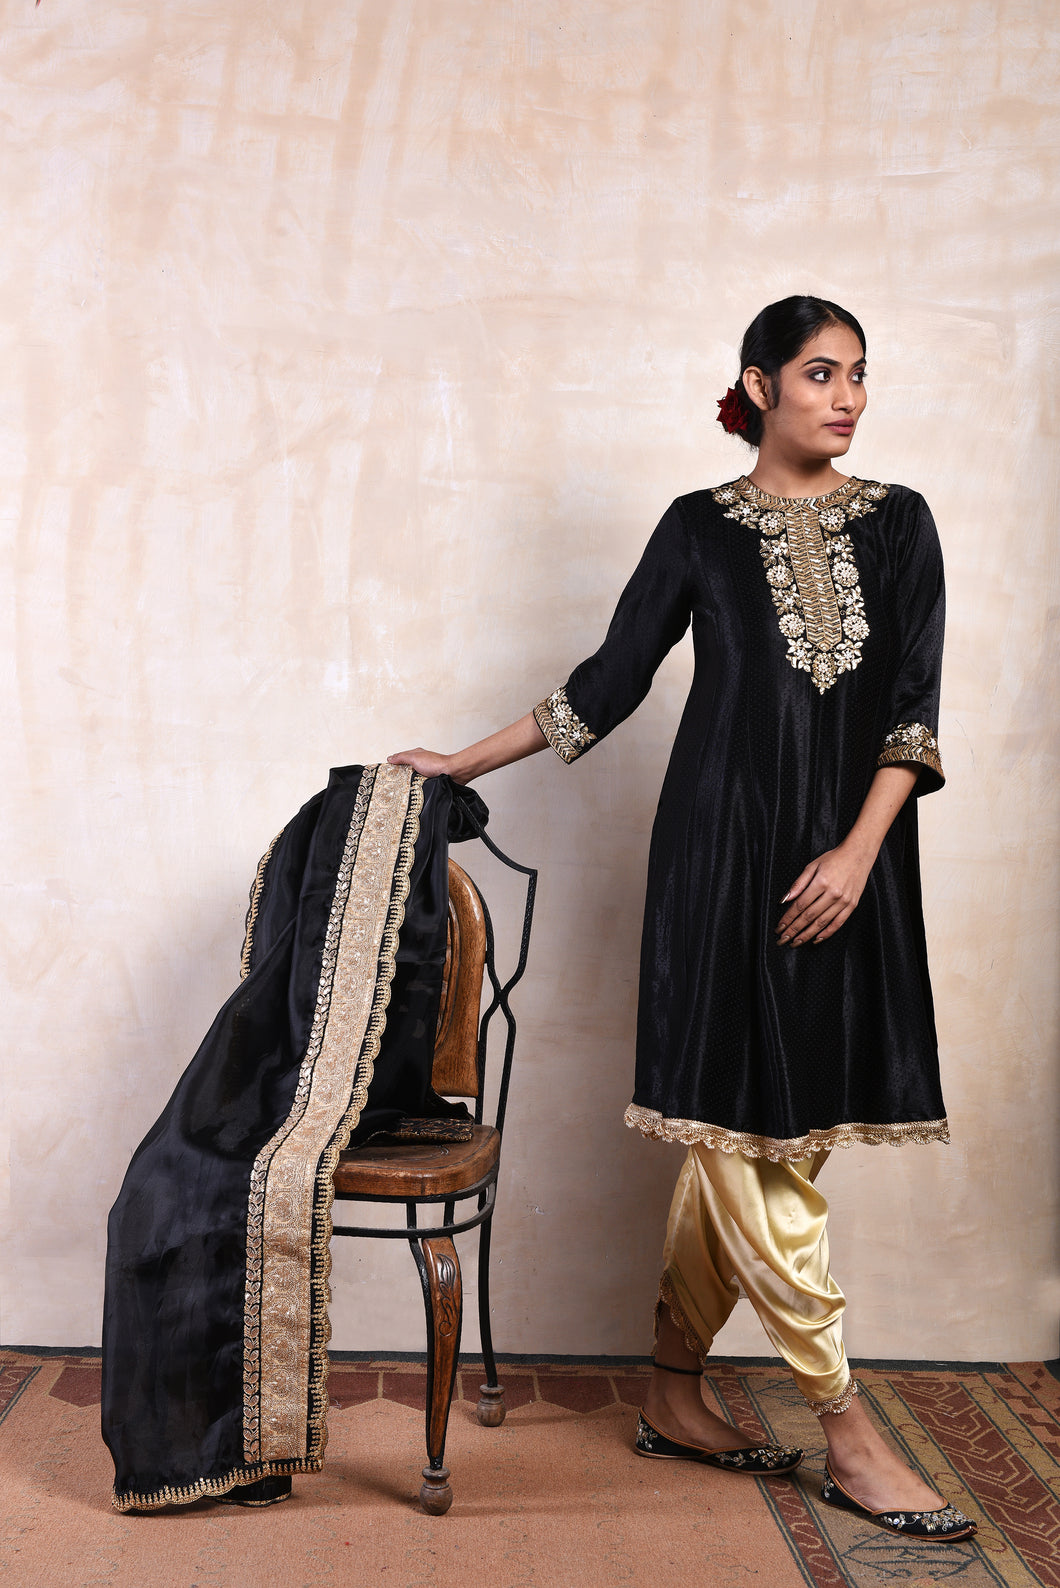 A Line Black Short Shaneel Kurta and Dupatta. Offset by a Pair of Gold Tulip Pants Complimenting the Gold Zari Work.